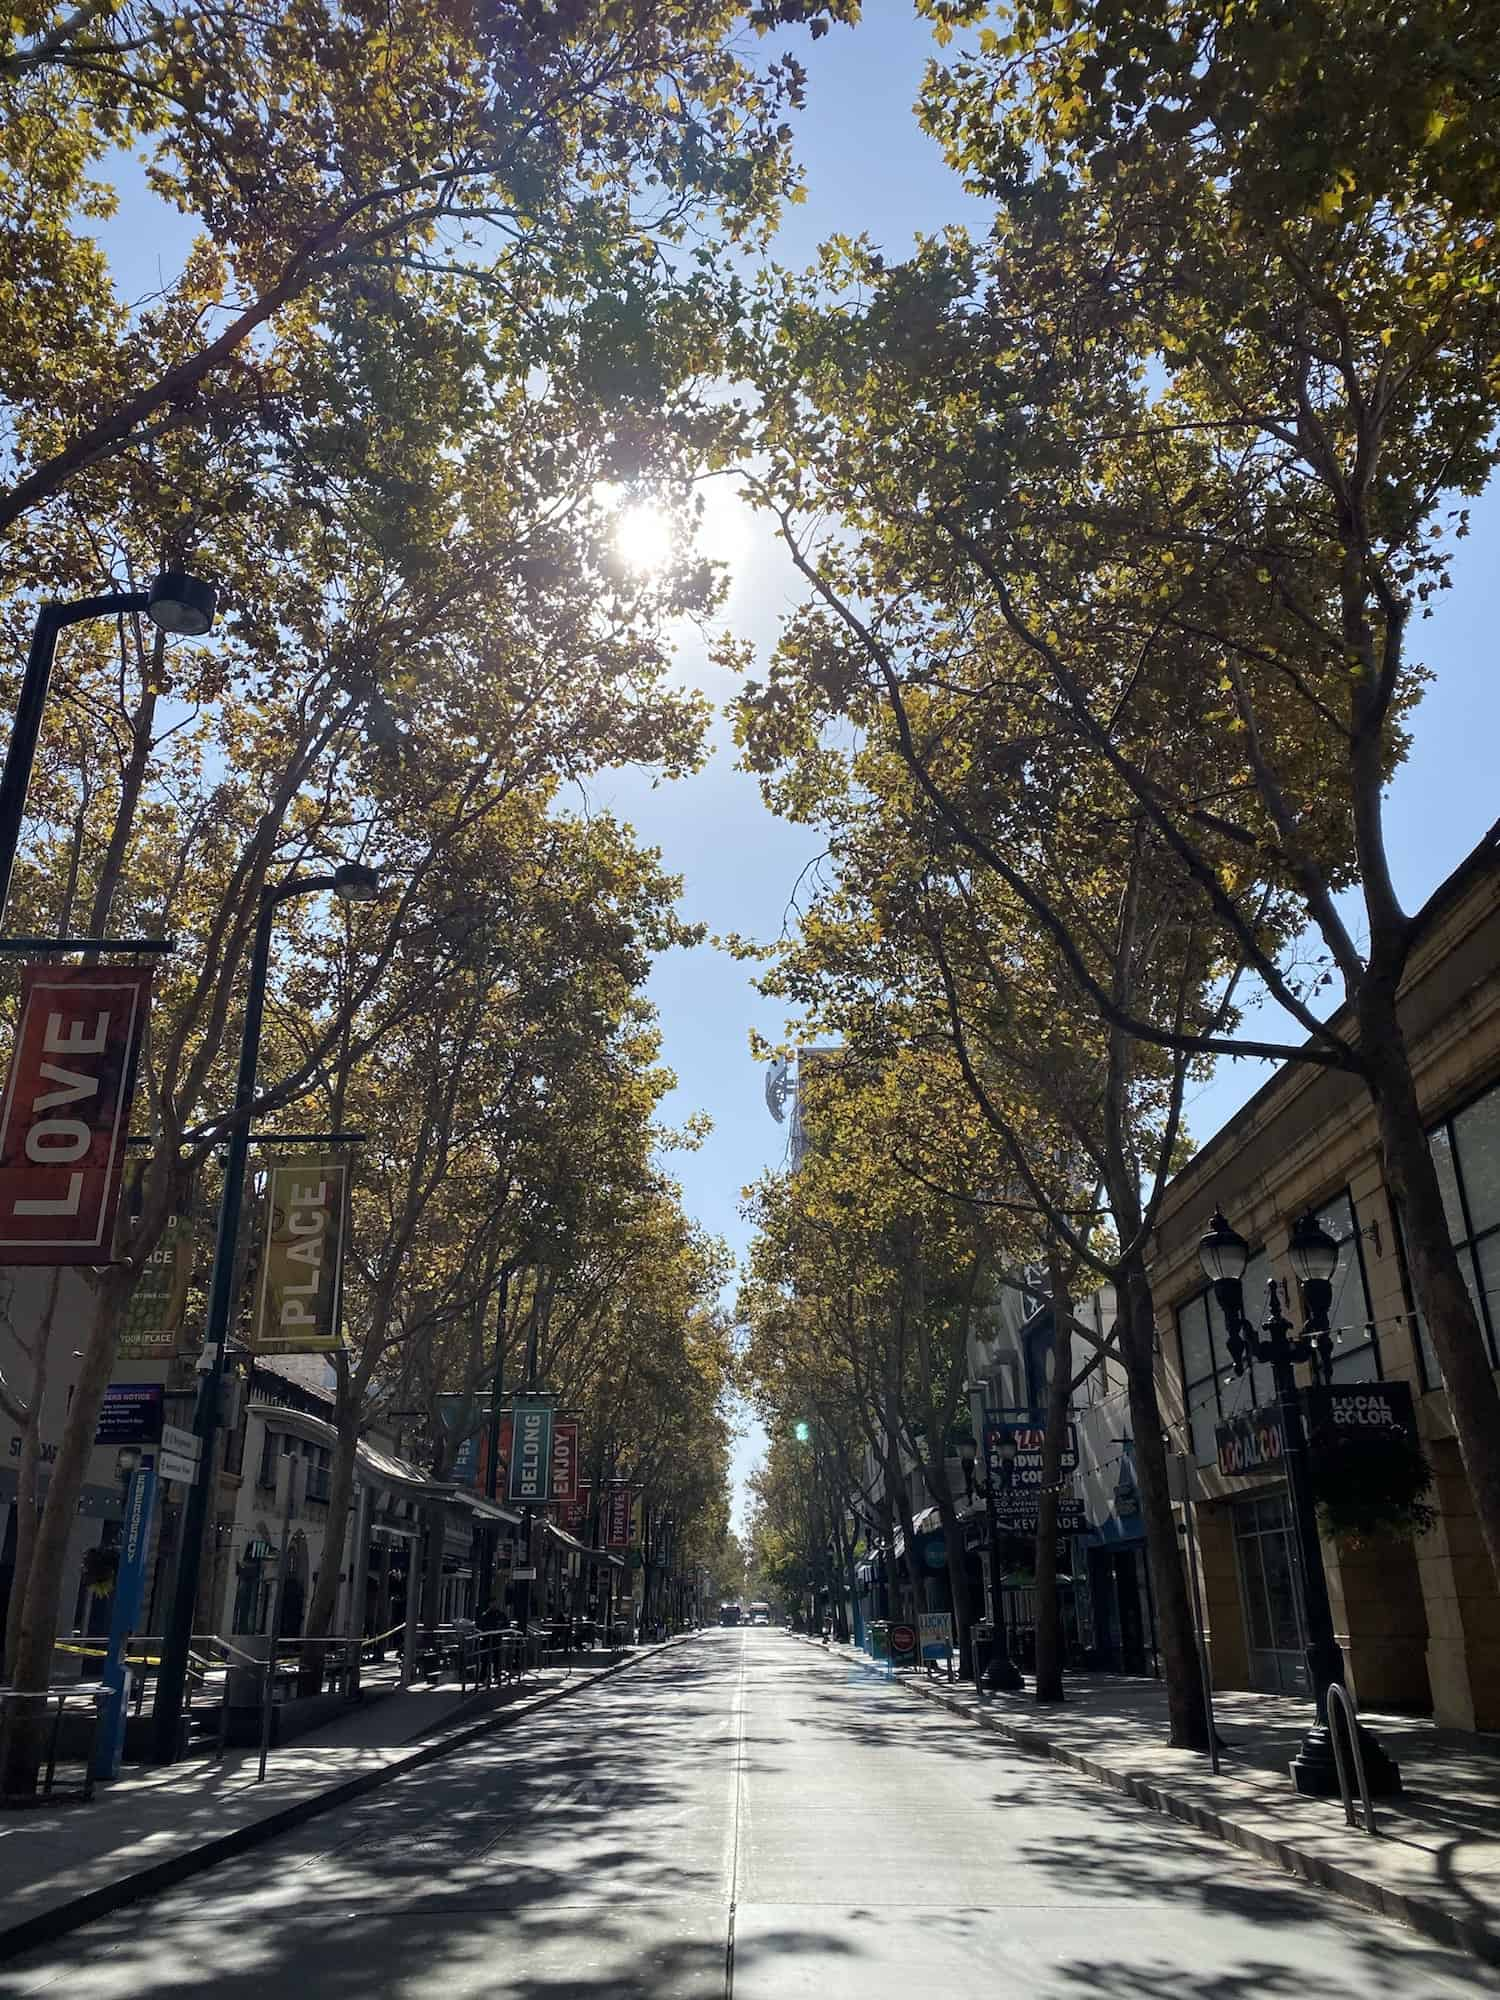 3 Days in San Jose - Downtown